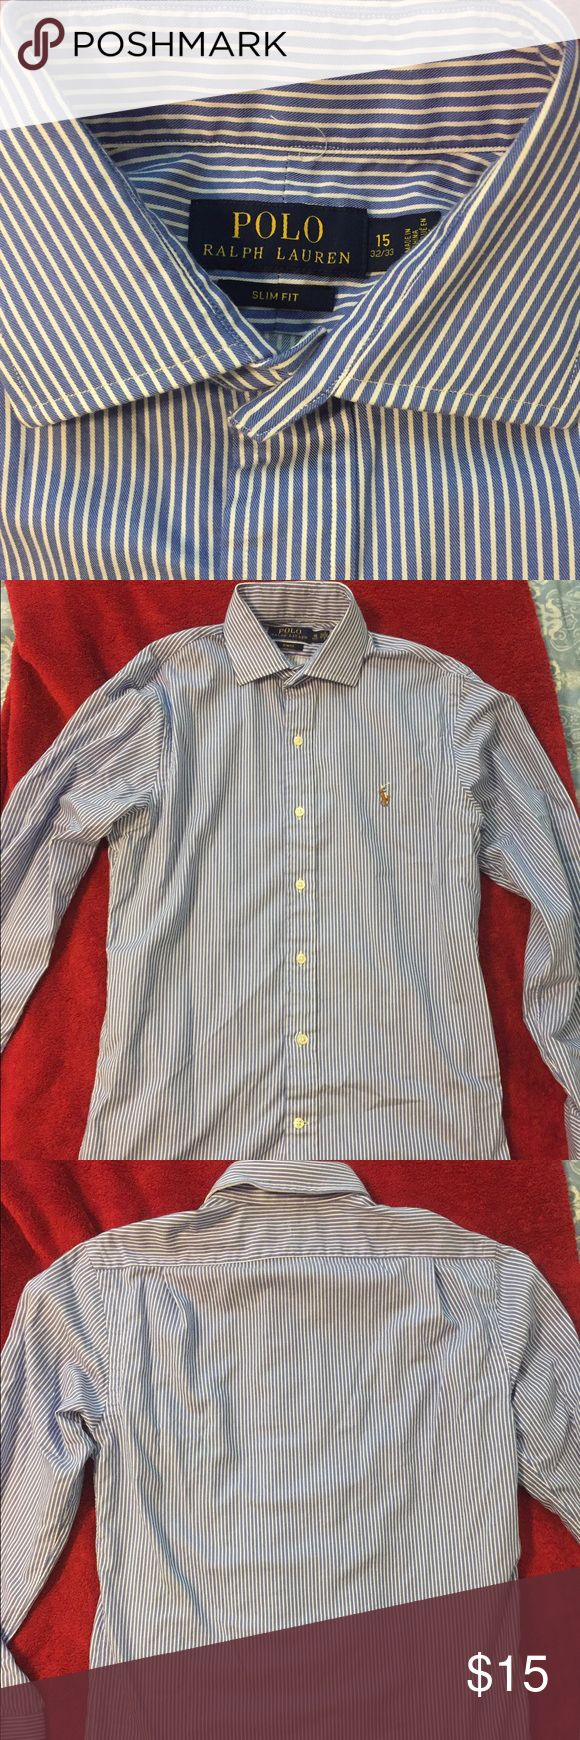 """Polo Ralph Lauren Slim Fit Dress Shirt Like new Polo Ralph Lauren Dress Shirt. Slim-Fit, Neck: 15"""", Arm: 32/33, Chest: 20"""", Length: 31"""". Blue with white pencil stripes. Spread collar. Polo by Ralph Lauren Shirts Dress Shirts"""